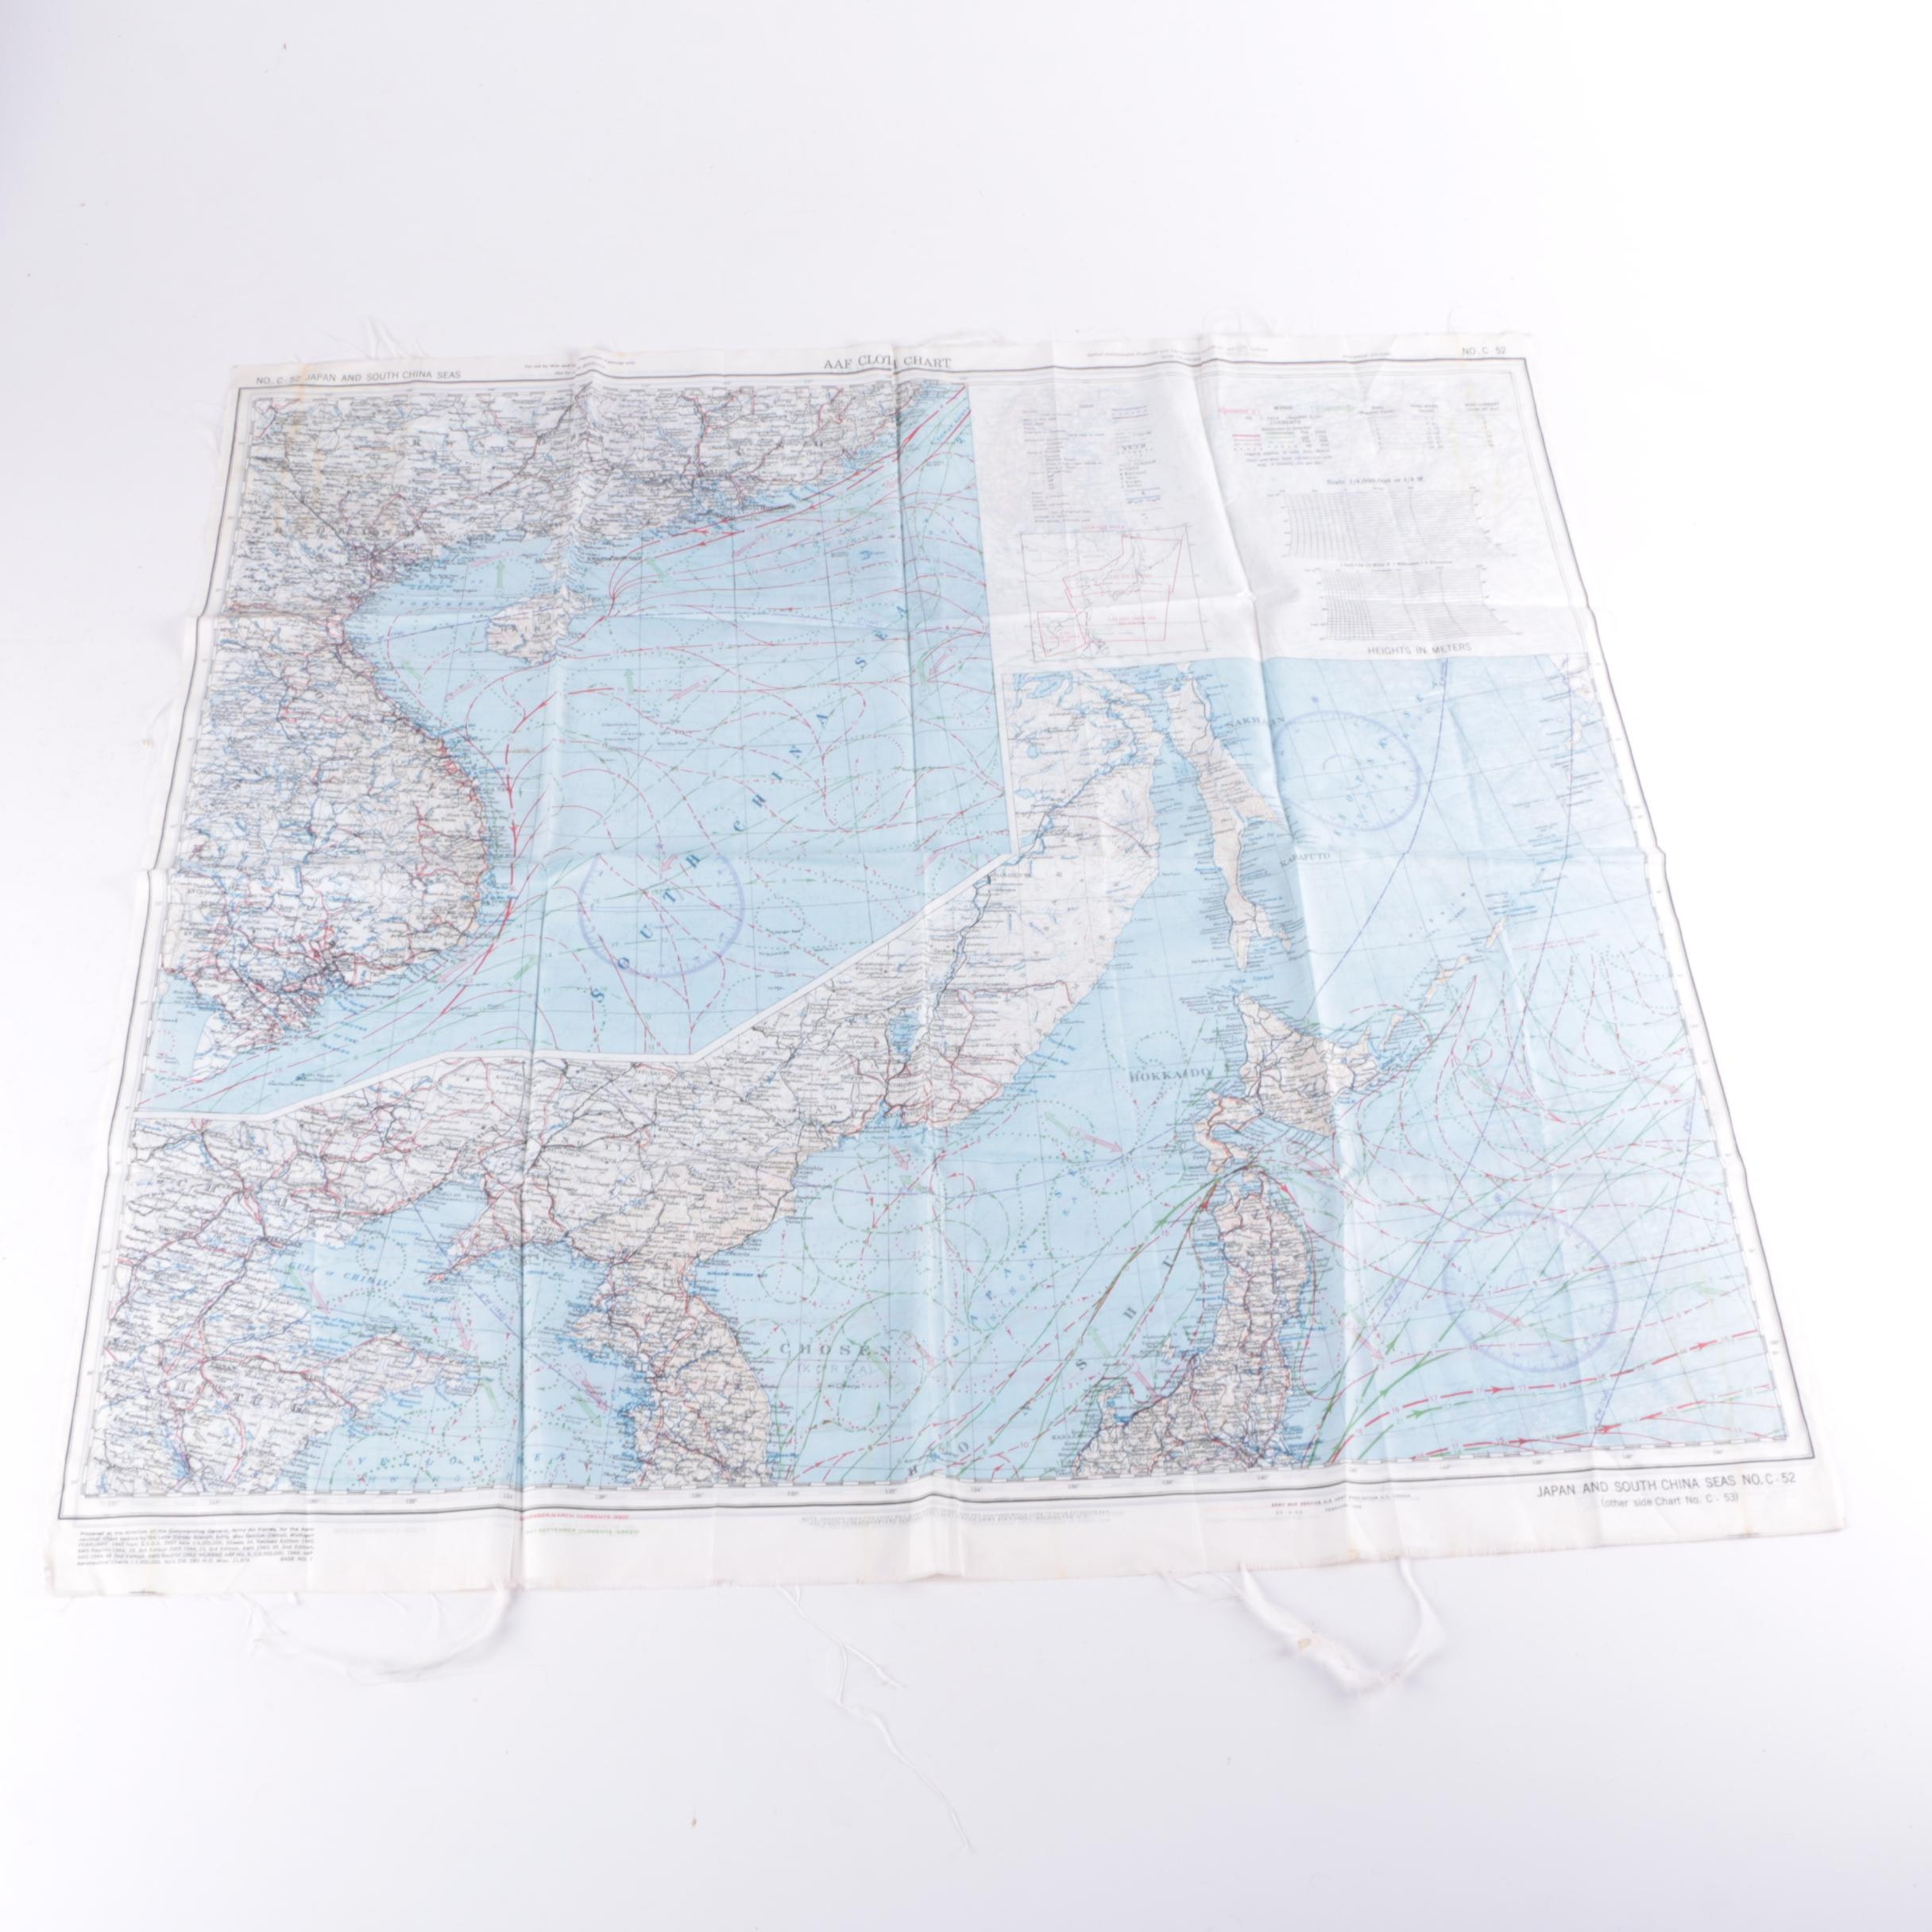 1945 USAAF Rayon Escape Map of Japan and China Seas